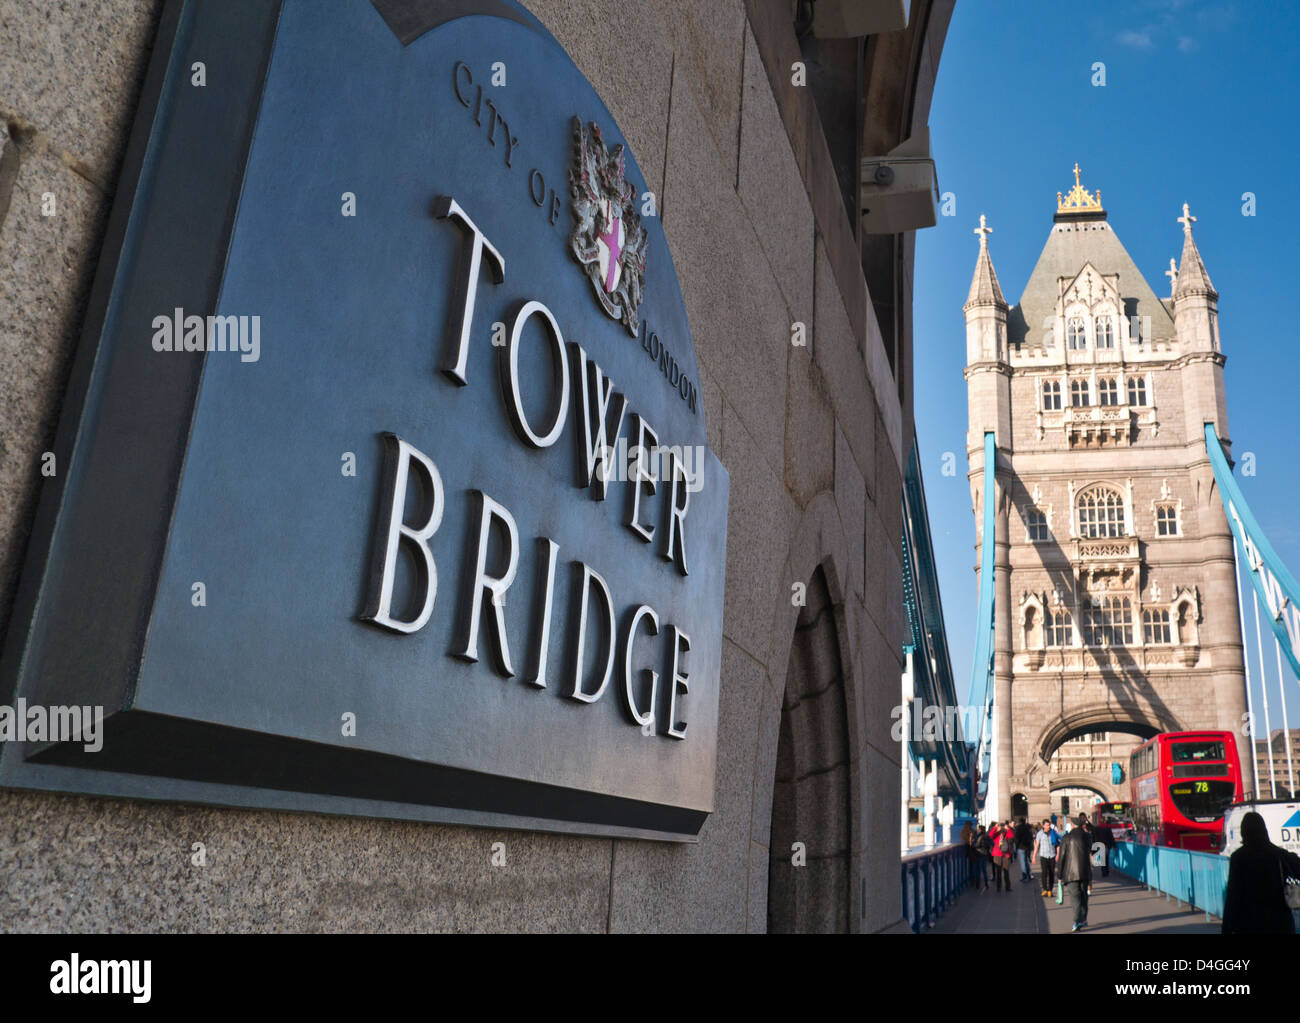 Tower Bridge and name plaque with traditional red bus in background Southwark London UK - Stock Image